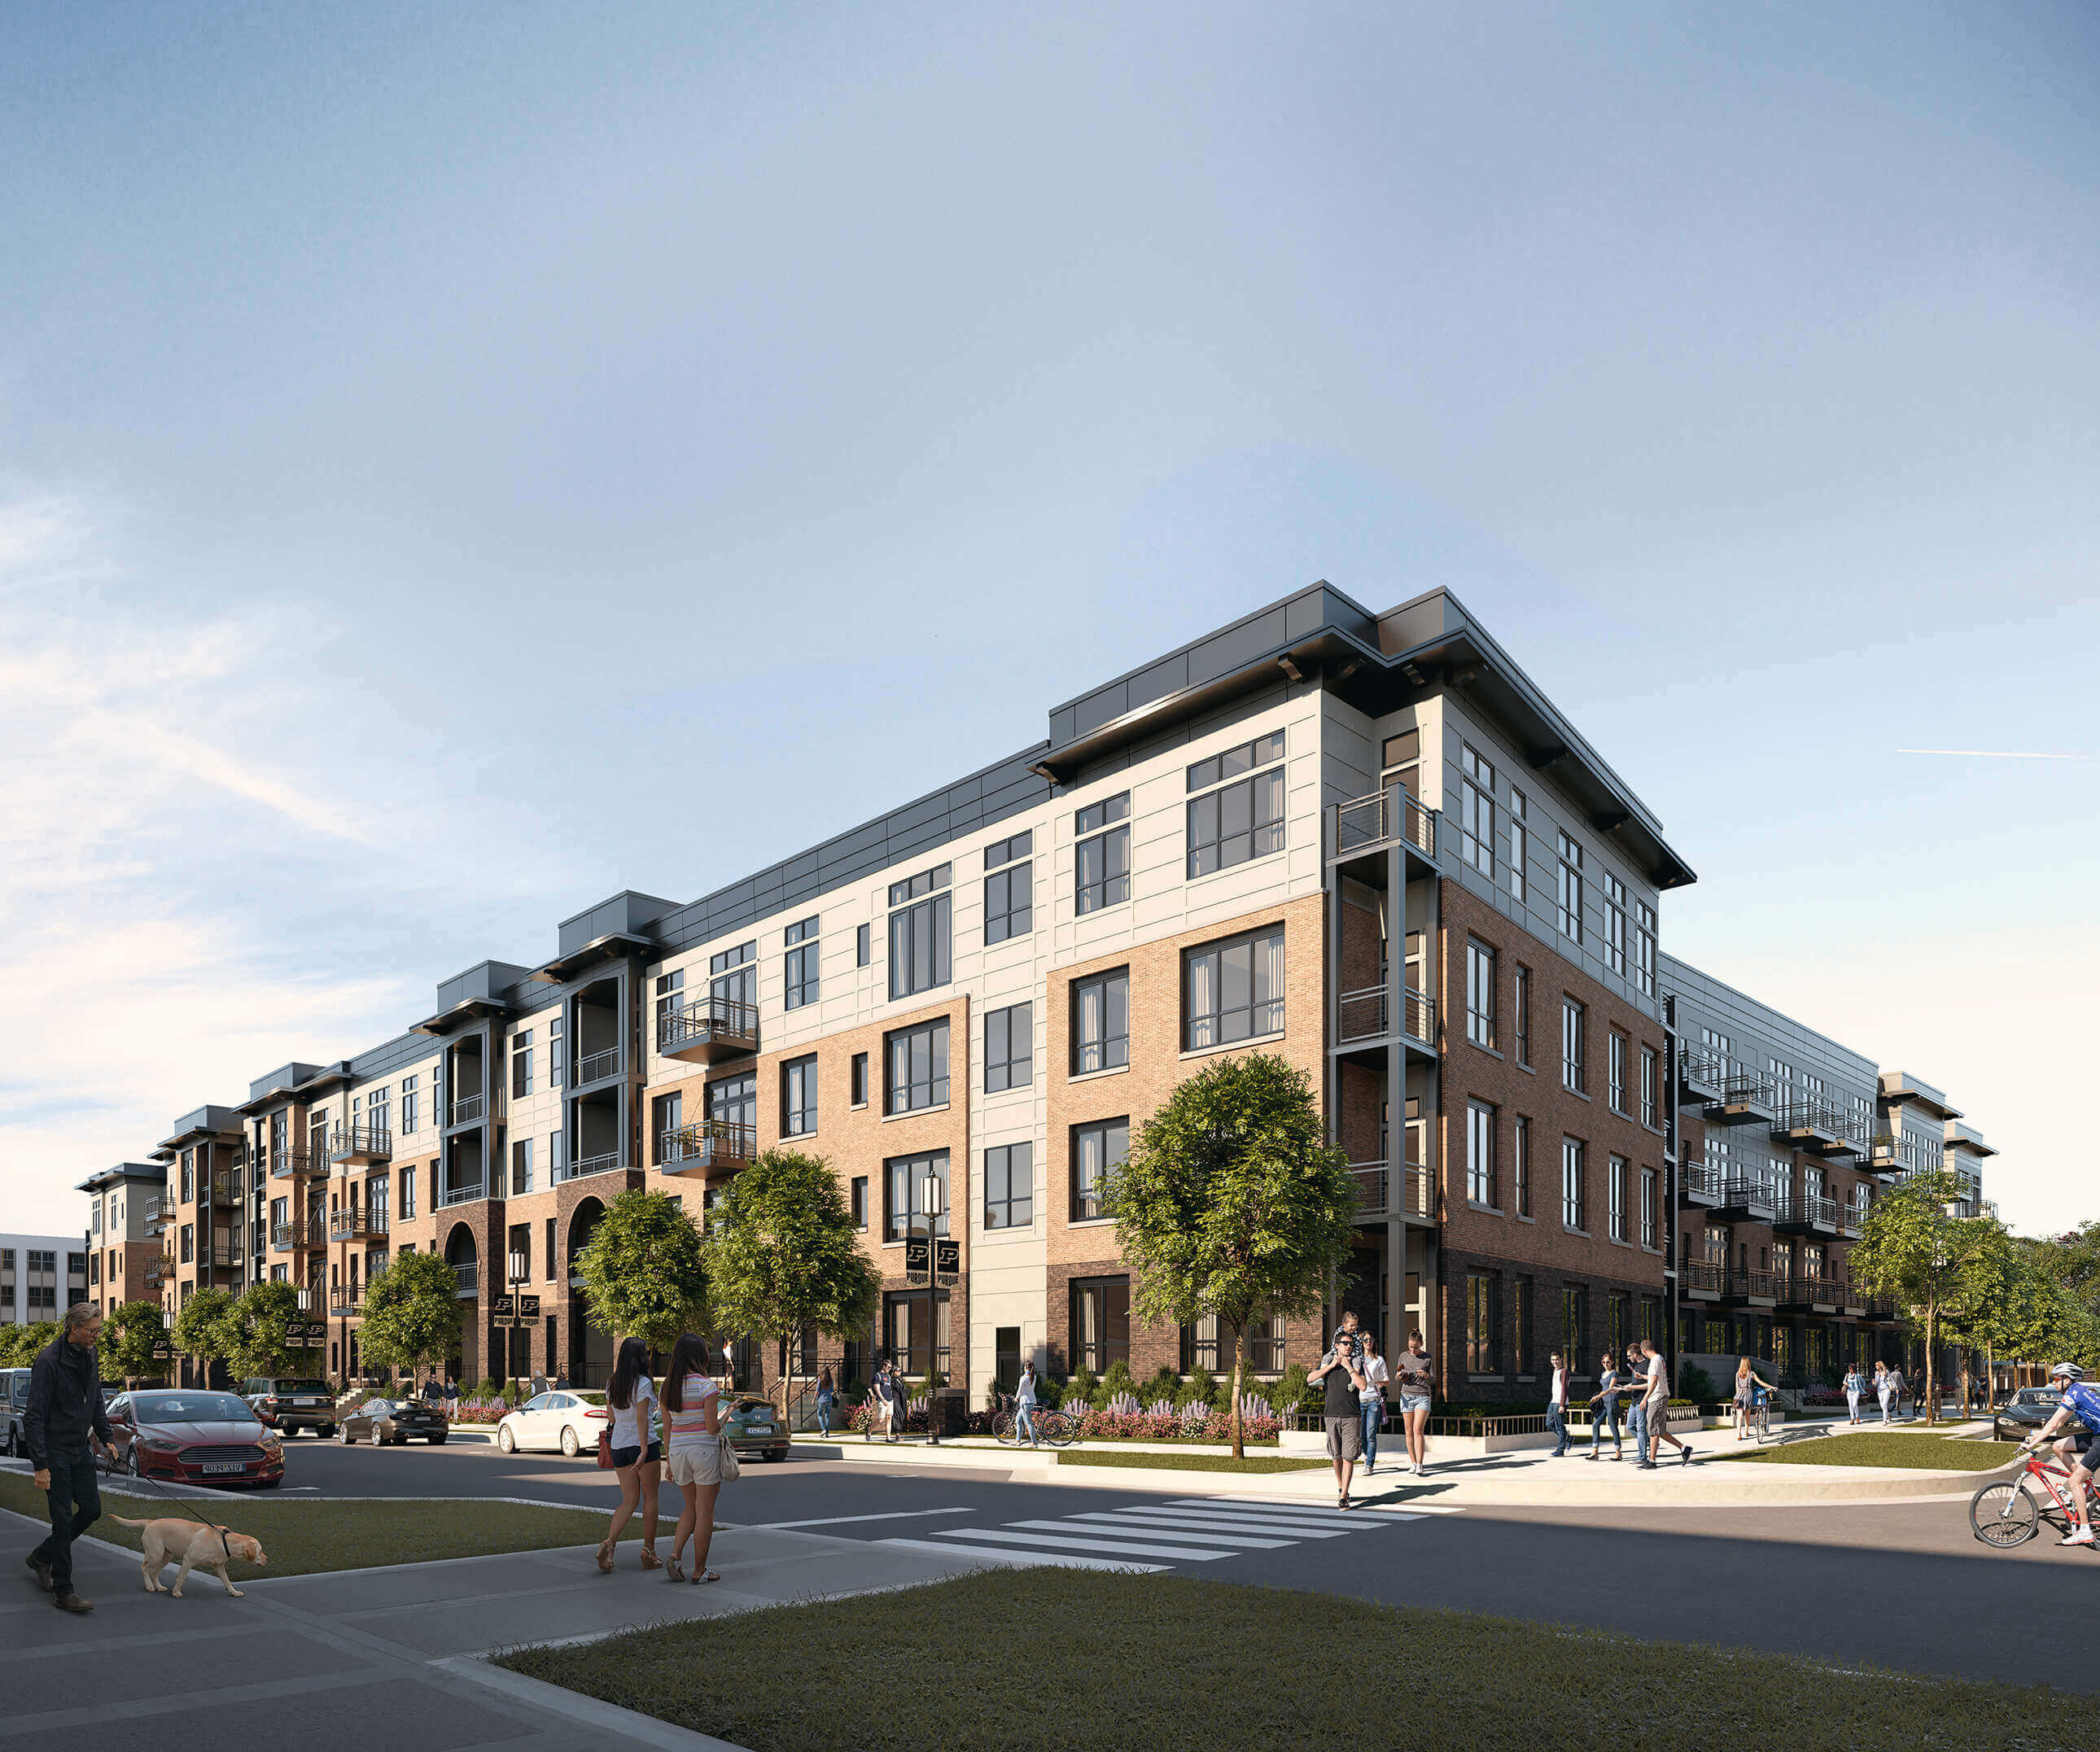 Apartments, Commercial Real Estate Next Phase For Purdue's